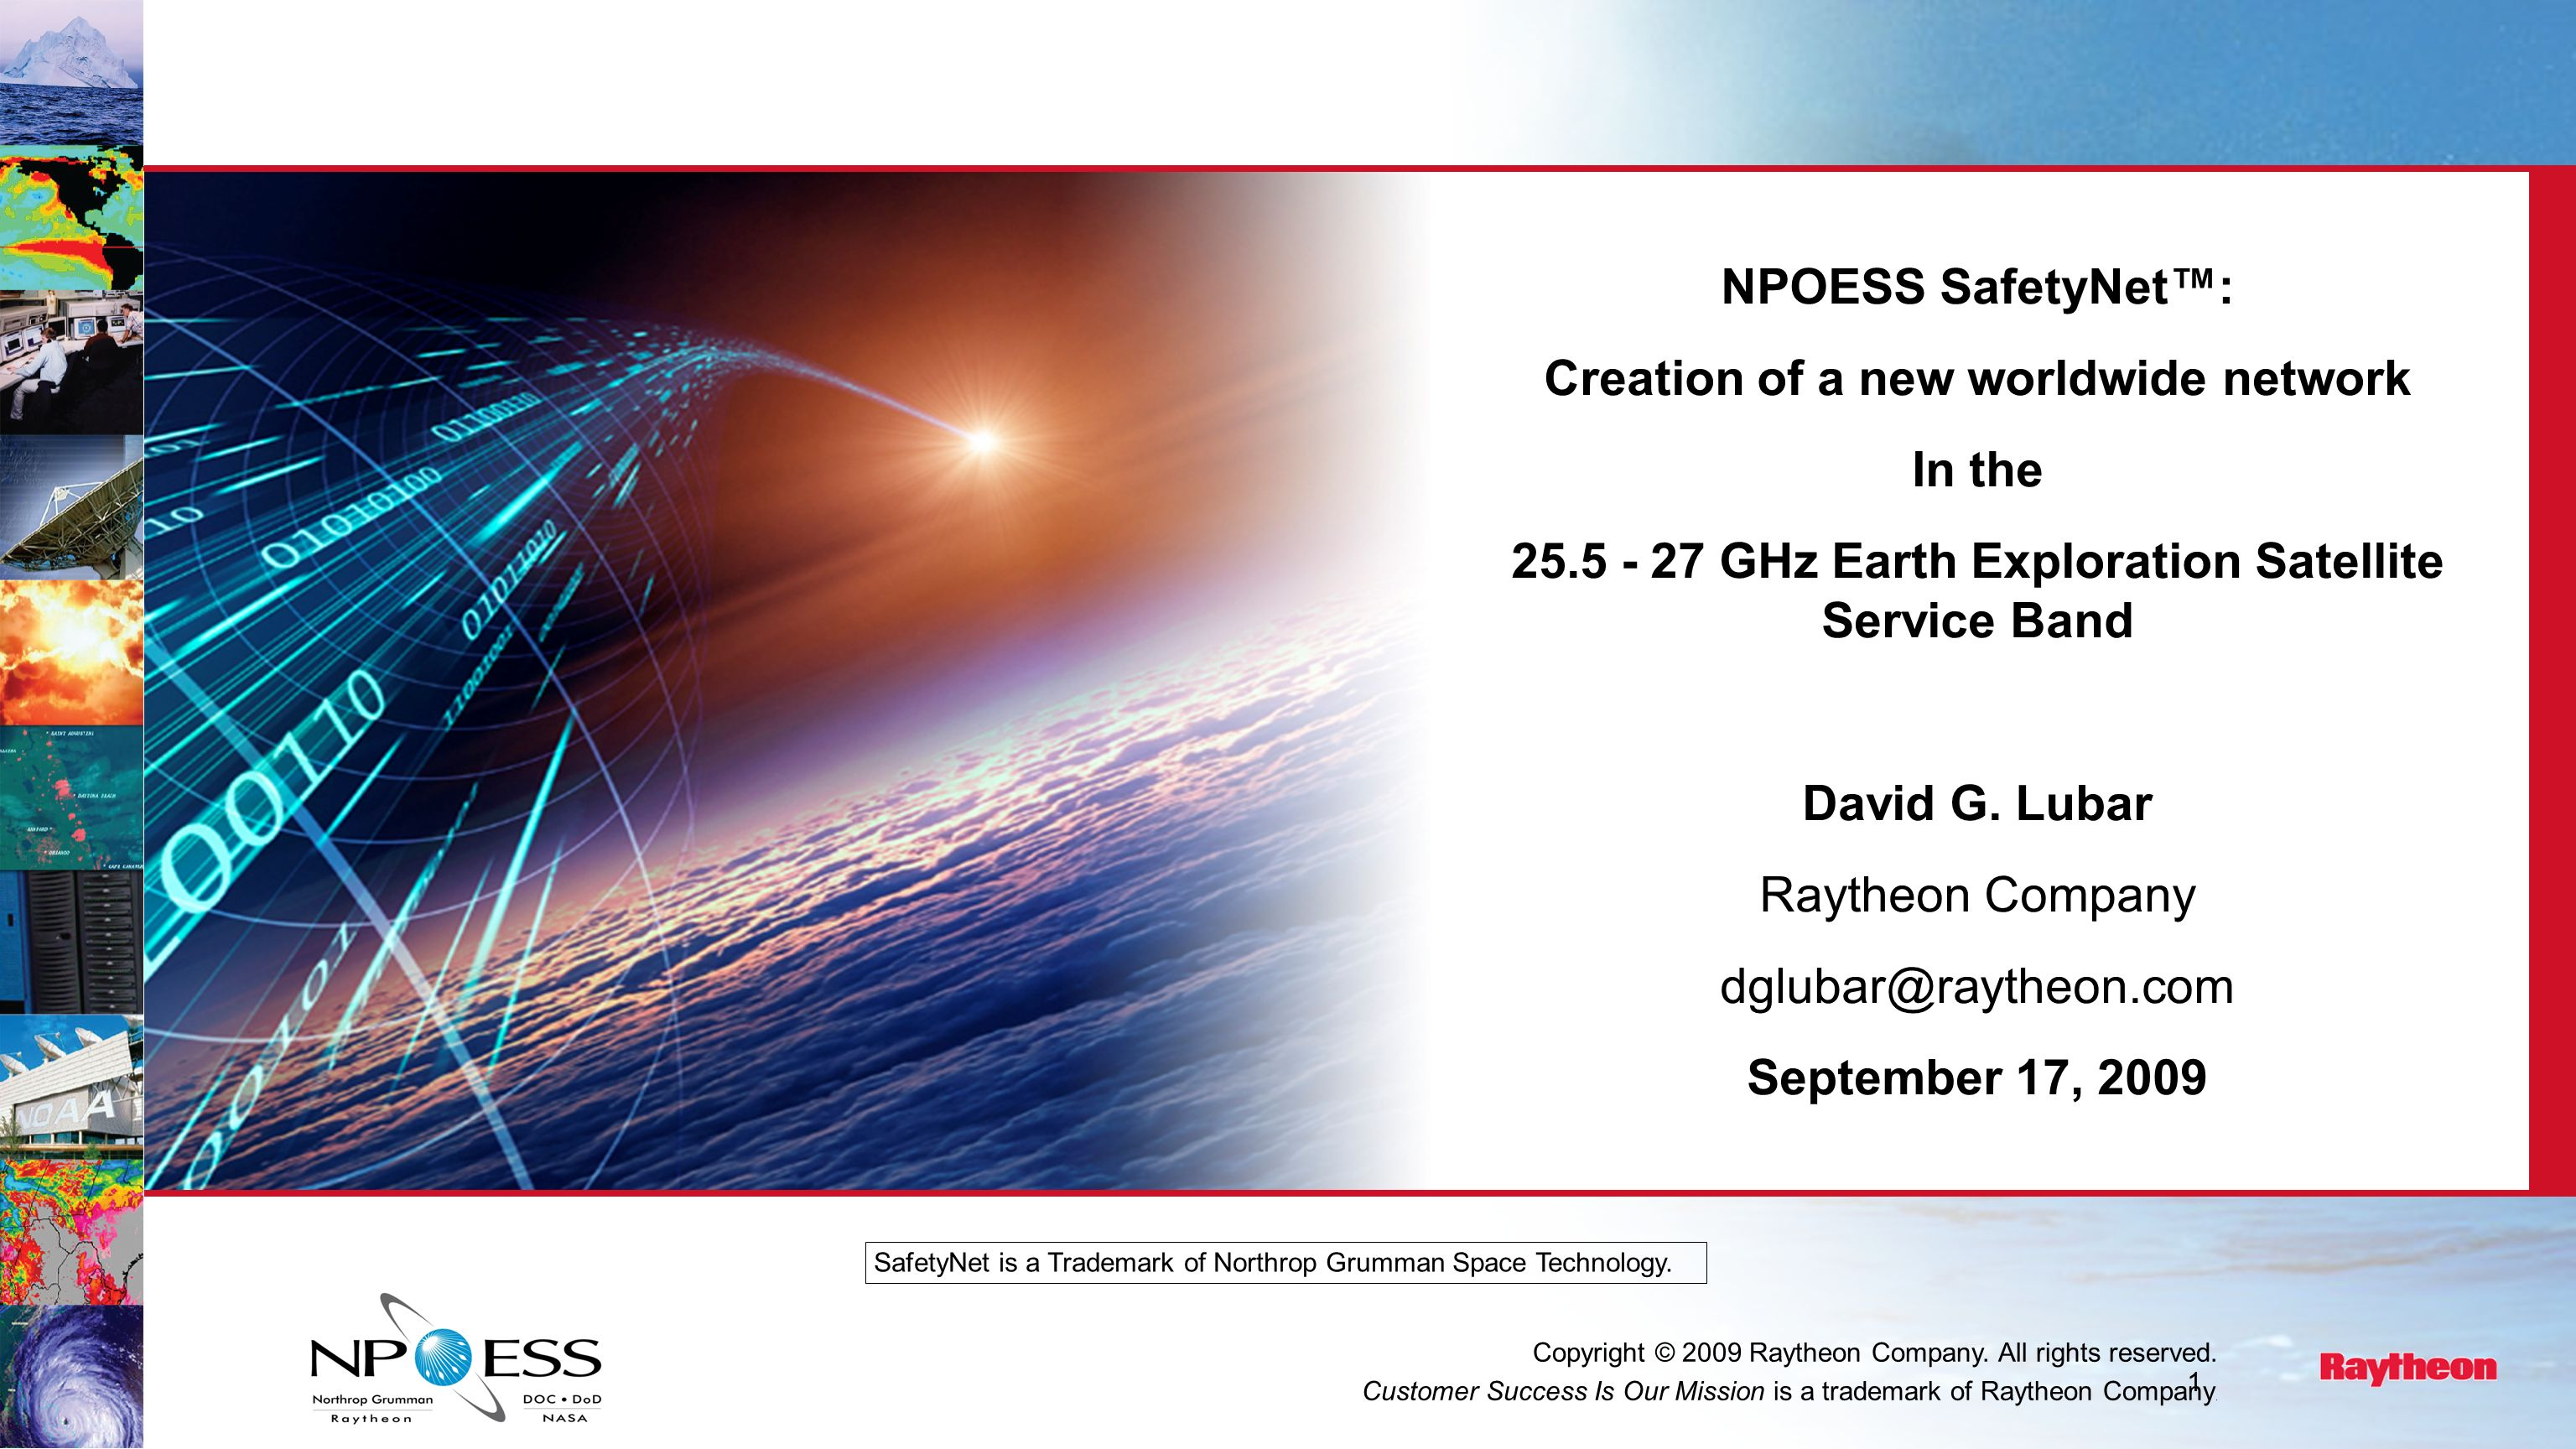 1 NPOESS SafetyNet: Creation of a new worldwide network In the 25.5 - 27 GHz Earth Exploration Satellite Service Band David G.